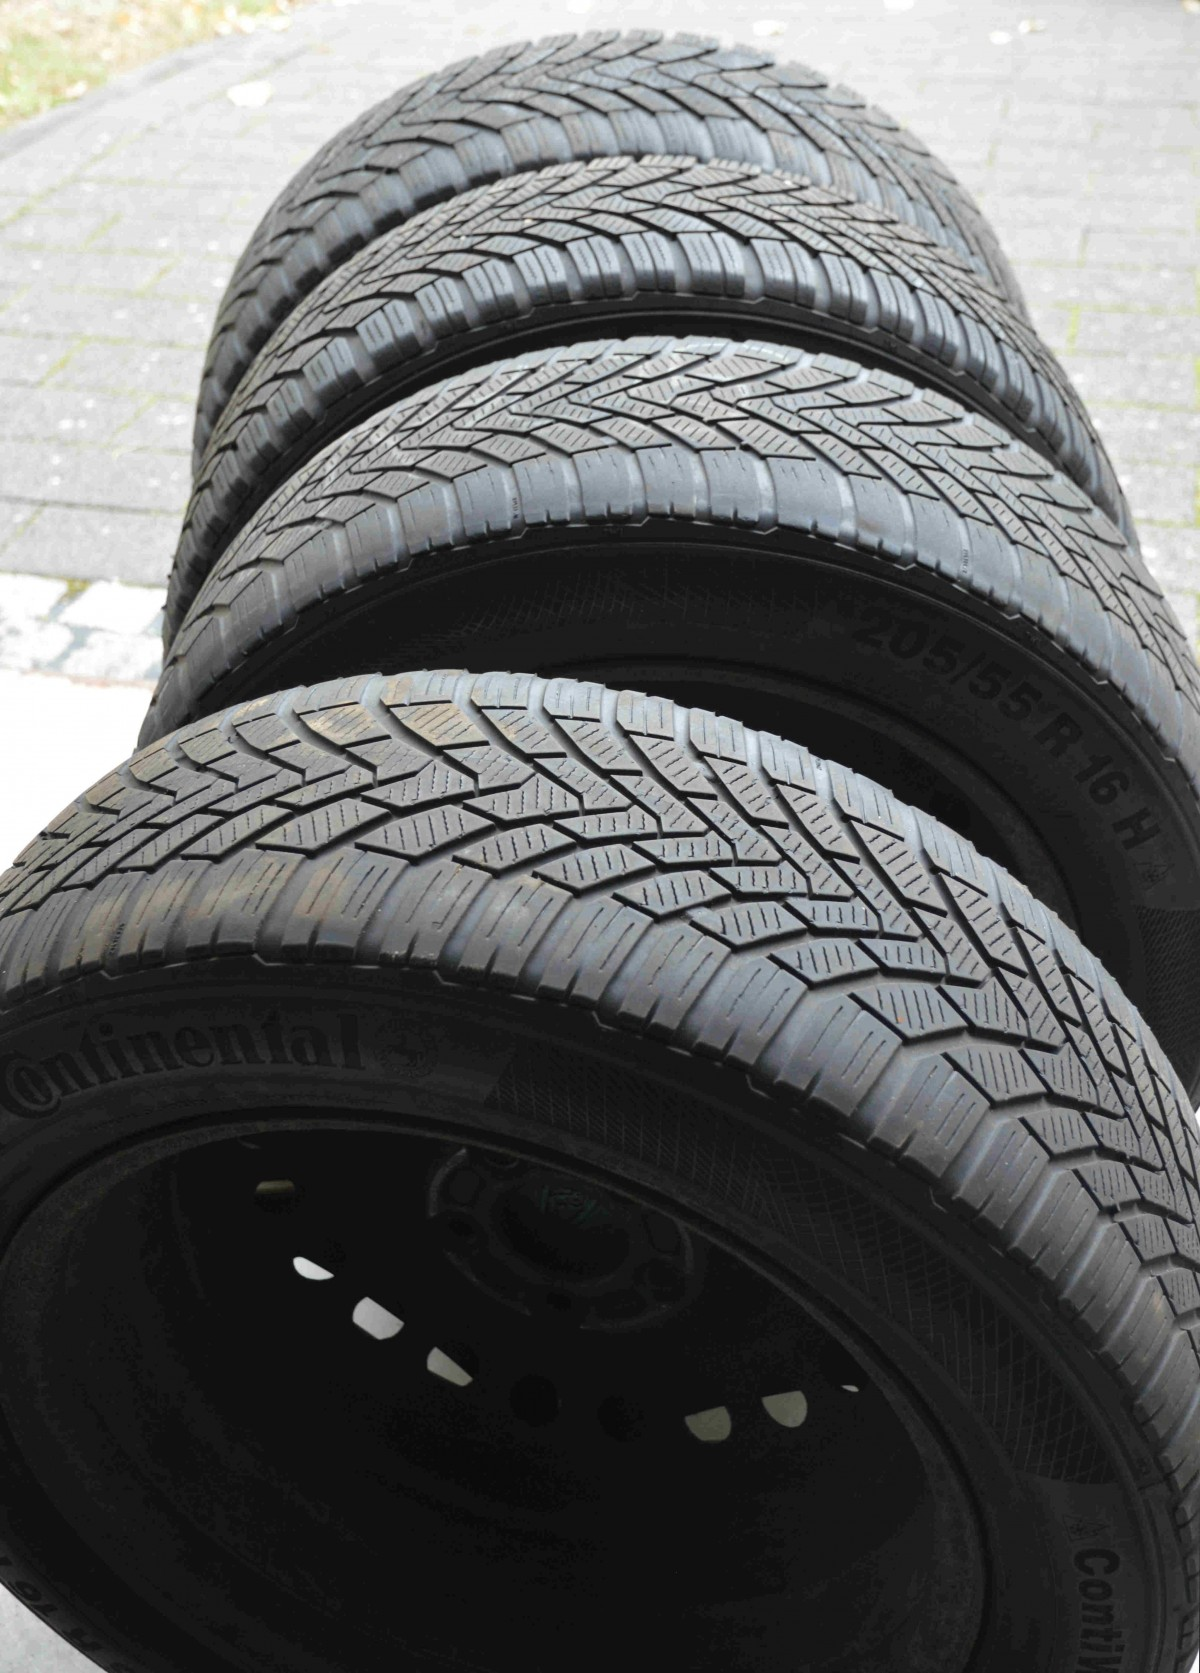 The art of picking the right rubber for your great drives